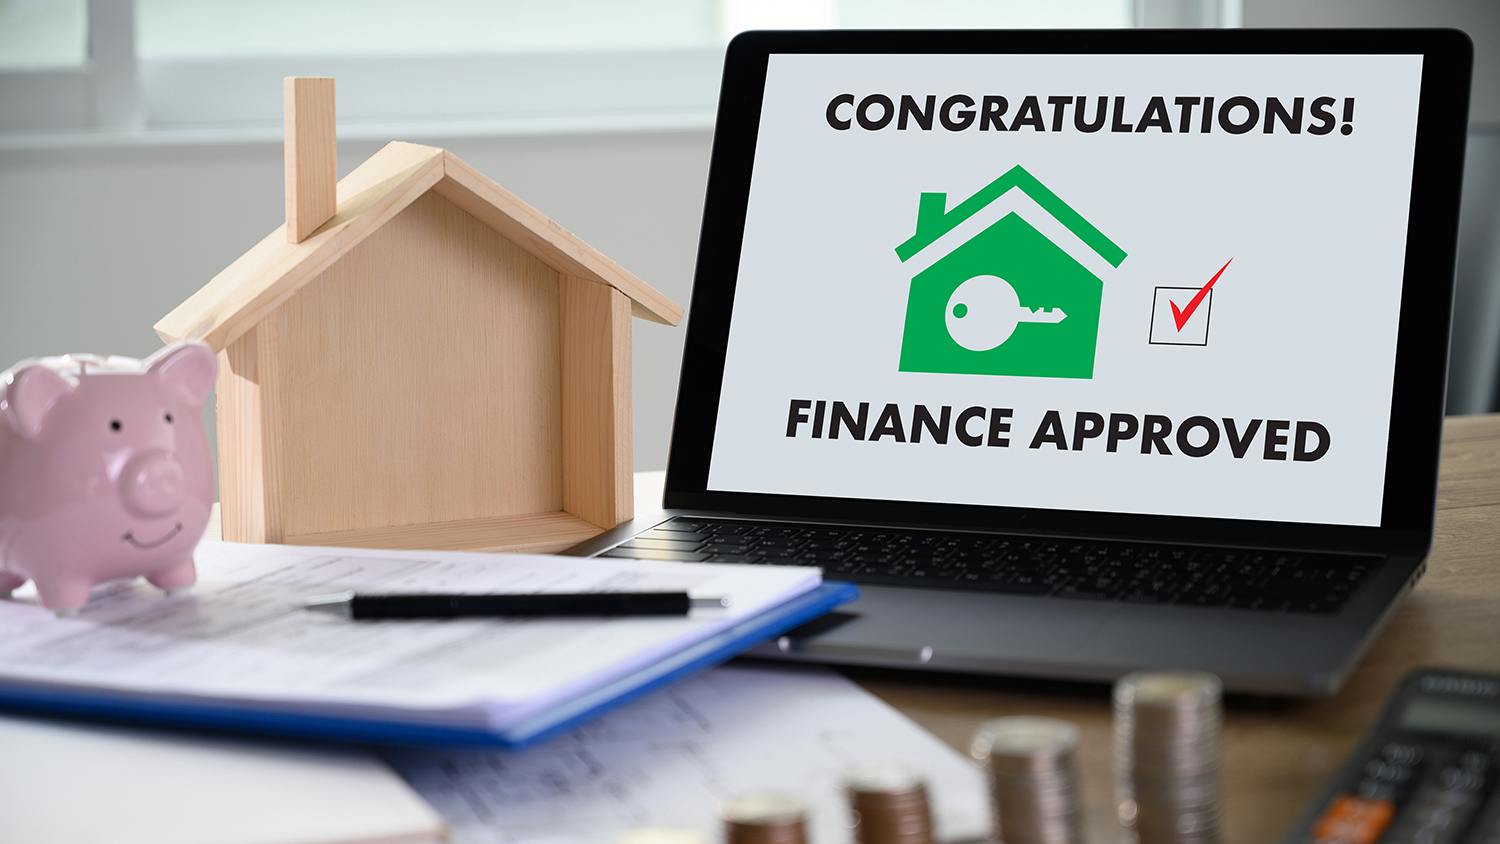 5 THINGS TO AVOID WHEN APPLYING FOR HOME FINANCE